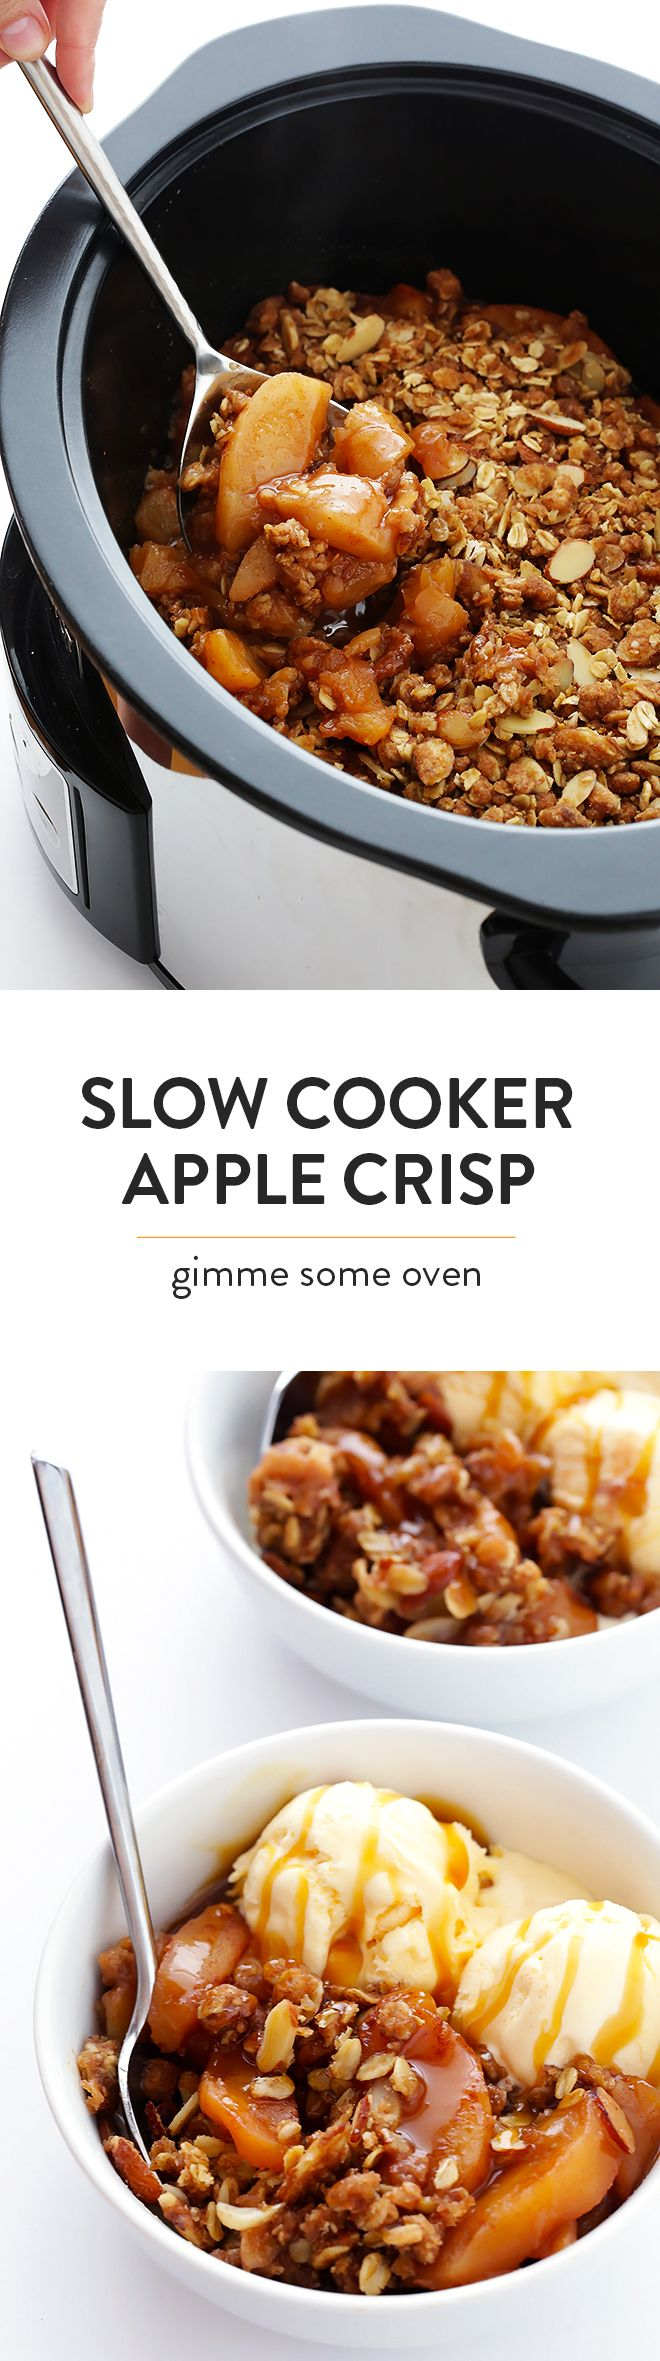 This Slow Cooker Apple Crisp recipe is easy to make in the crock-pot, and it's made with the most delicious warm cinnamon apples and crisp oatmeal-almond topping! | gimmesomeoven.com (Gluten-Free / Vegan / Vegetarian)